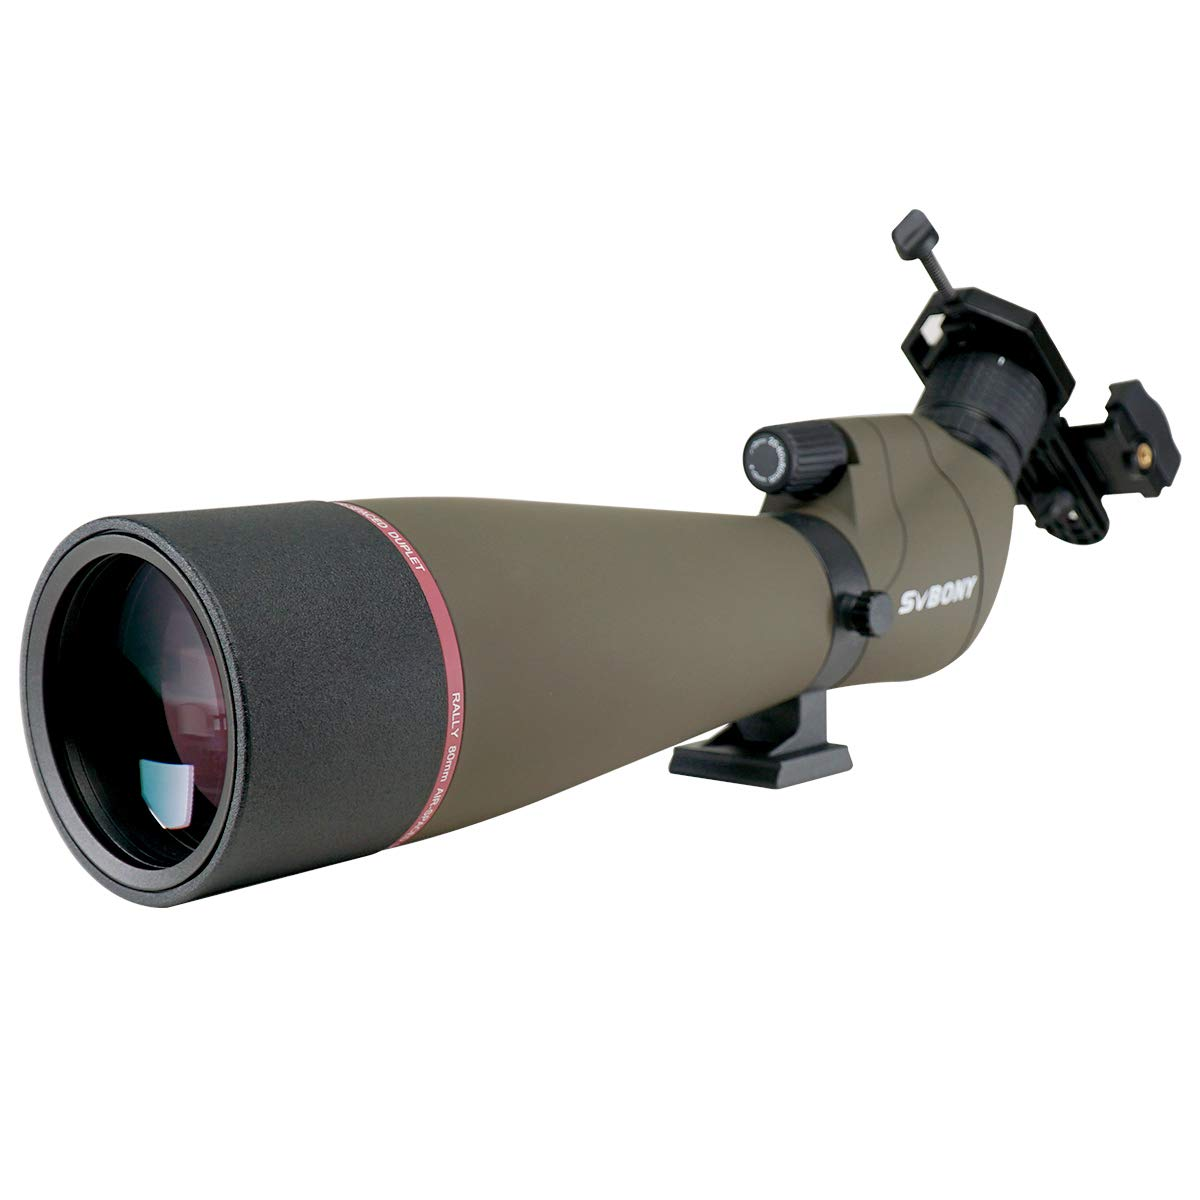 SVBONY SV13 Spotting Scope Telescope for Hunting 20-60X80mm Zoom Range IPX7 Waterproof with Phone Adapter Bird Watching